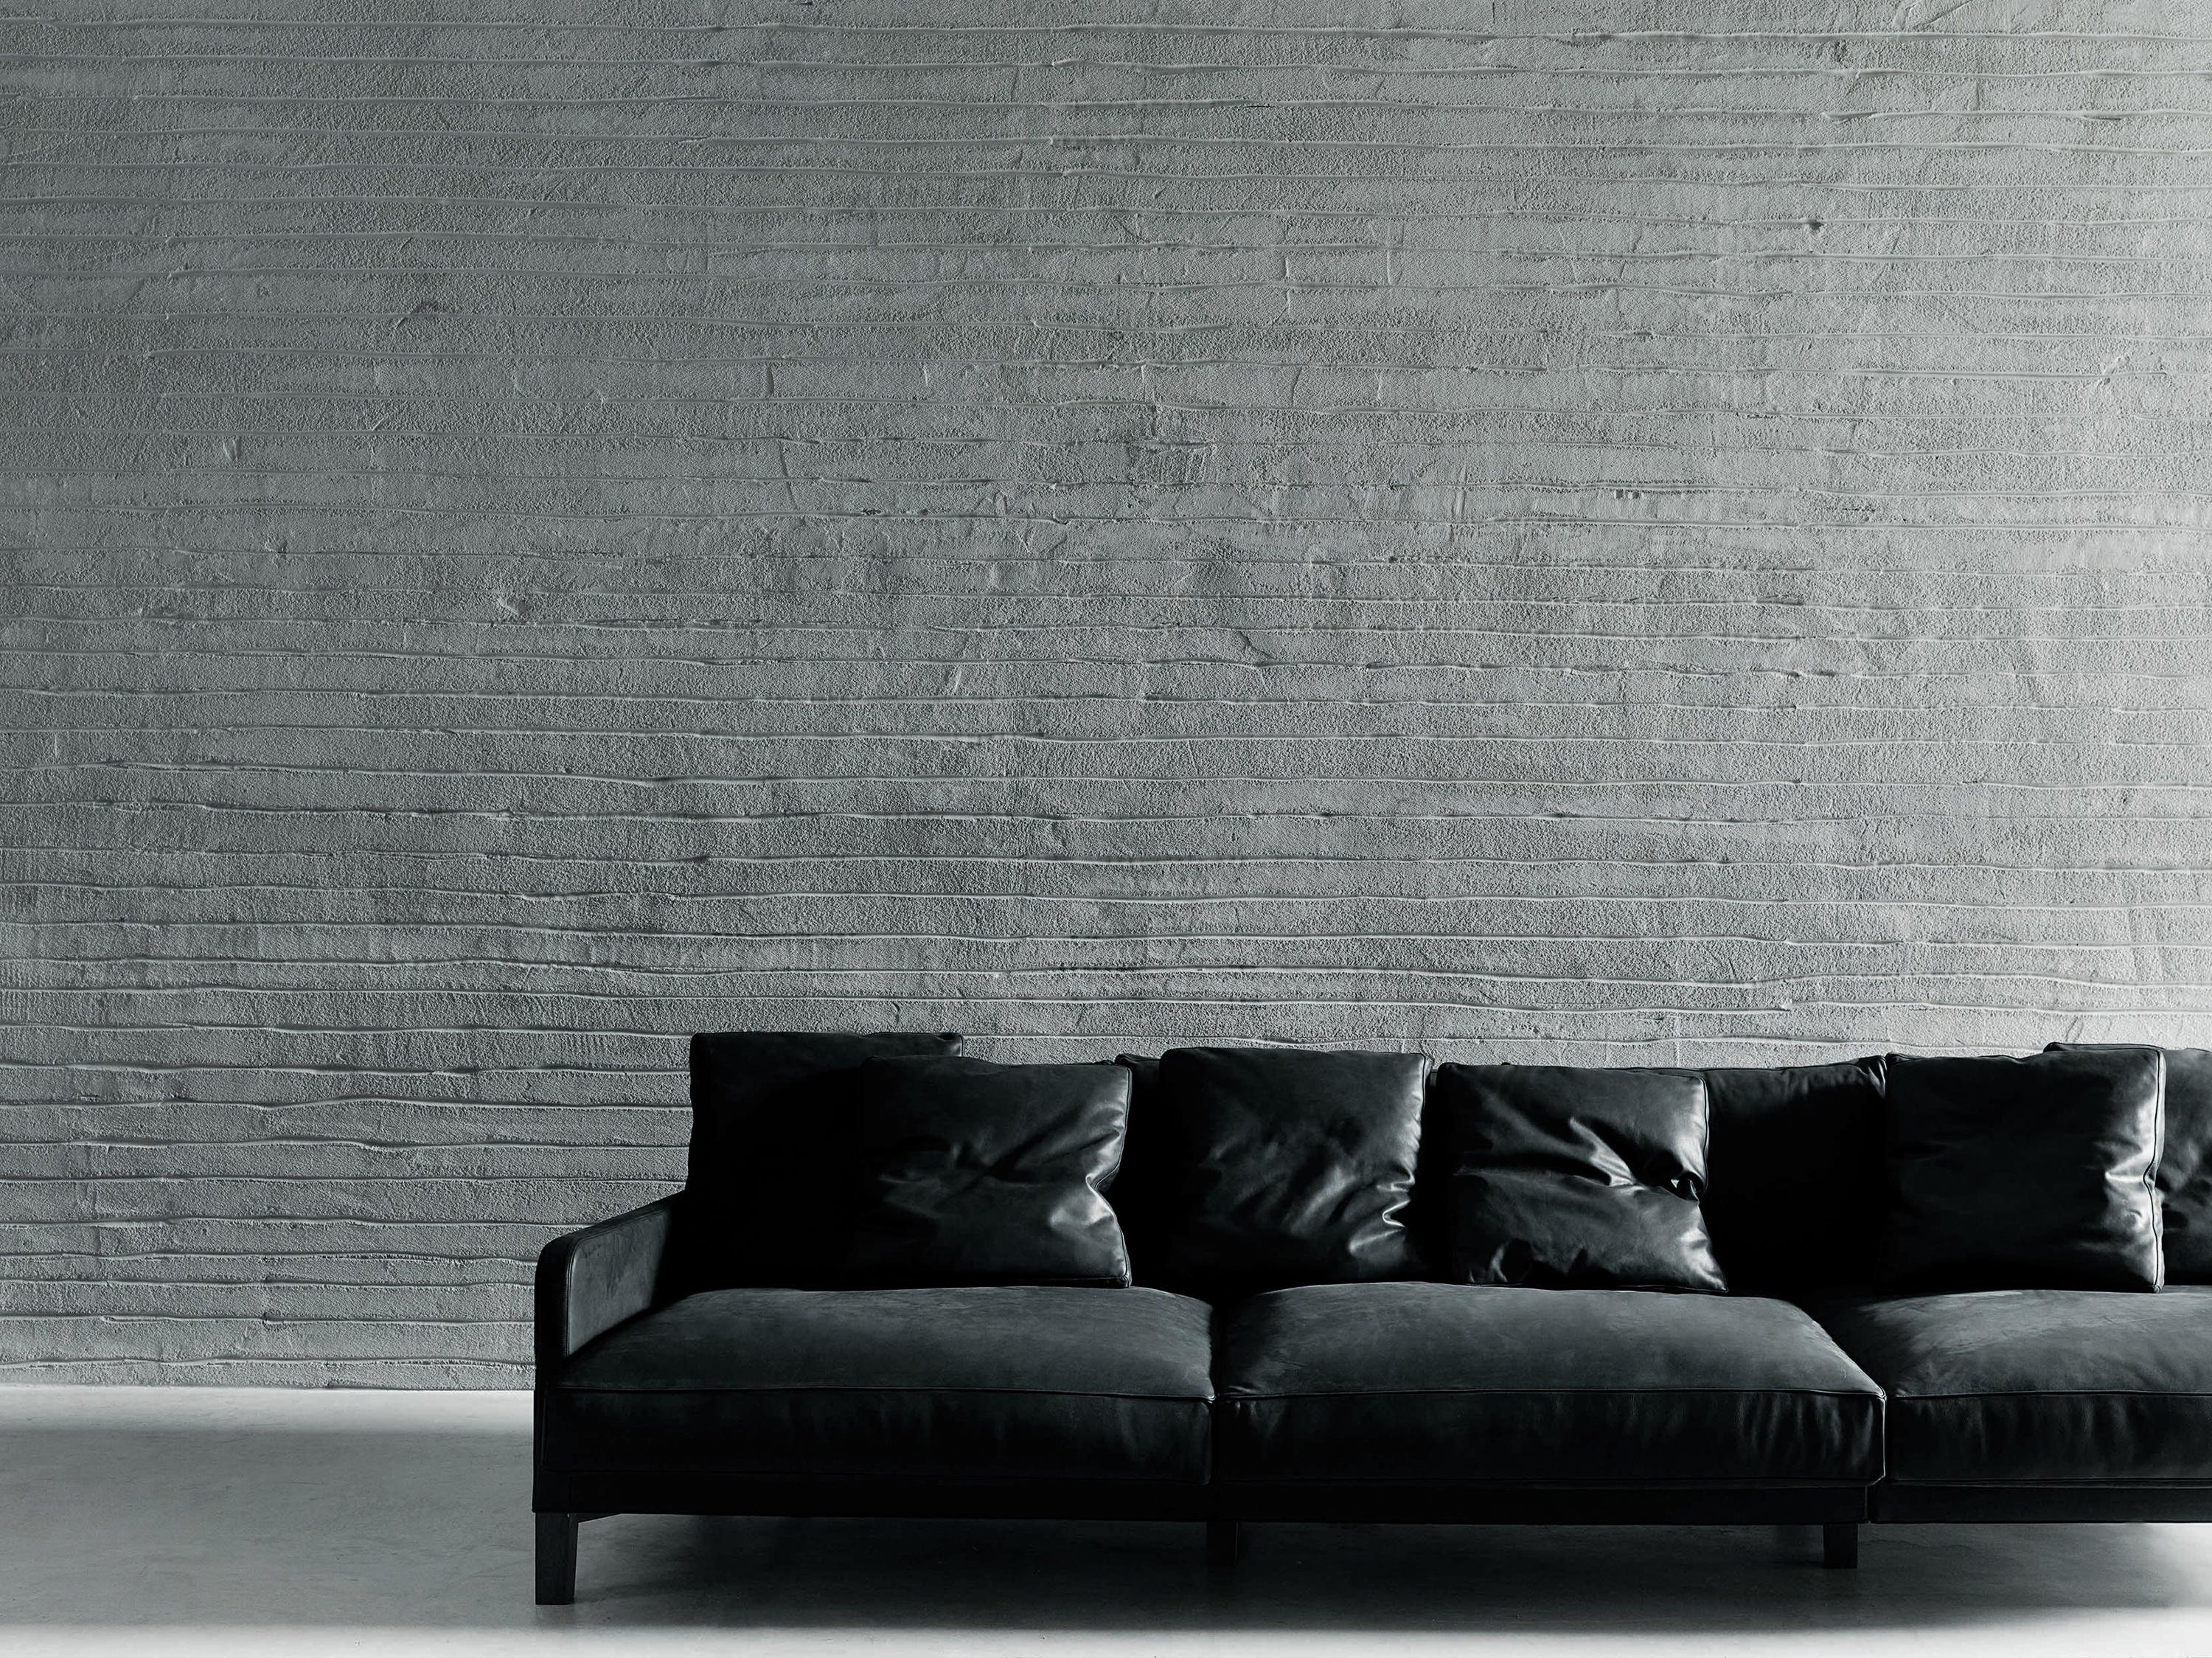 GroB Dumas Sofa By Living Divani Dumas Sofa By Living Divani ...